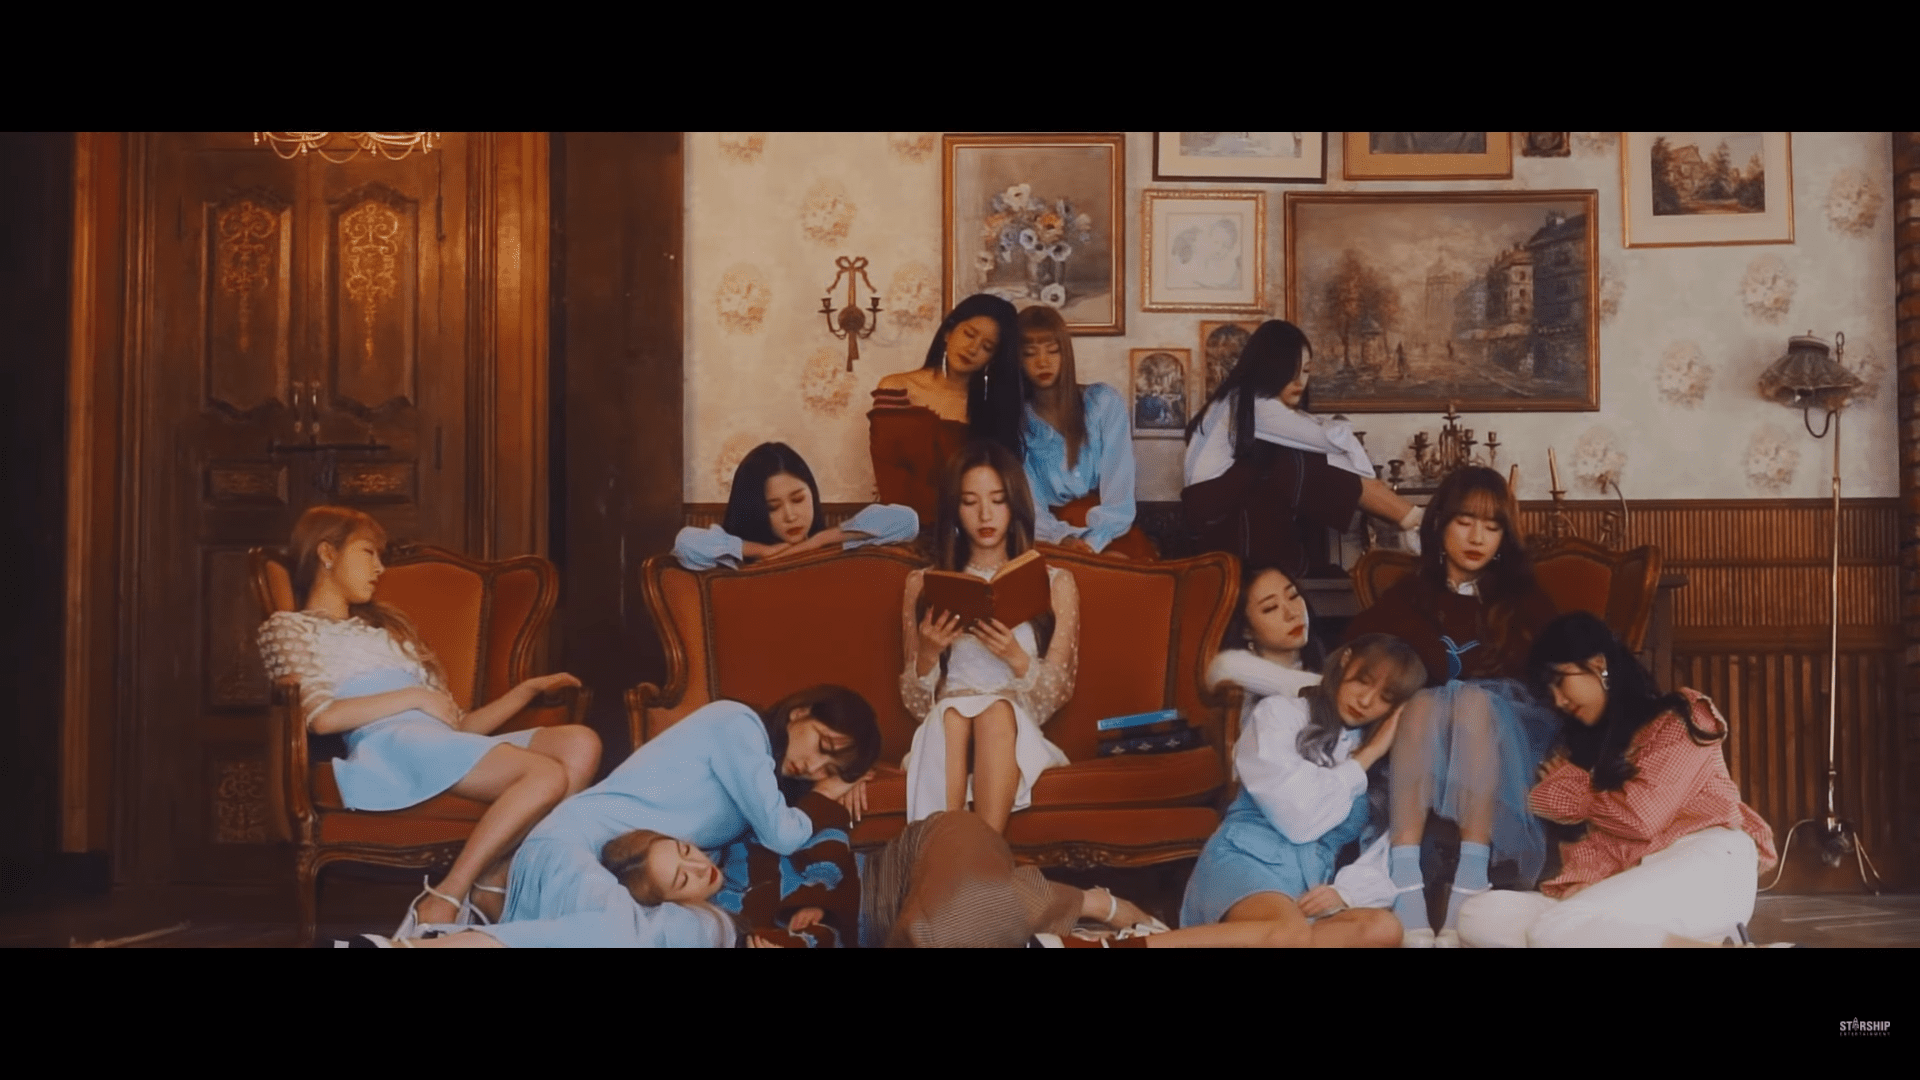 WATCH: Cosmic Girls Share Their Dream In Newest Comeback Teaser Video